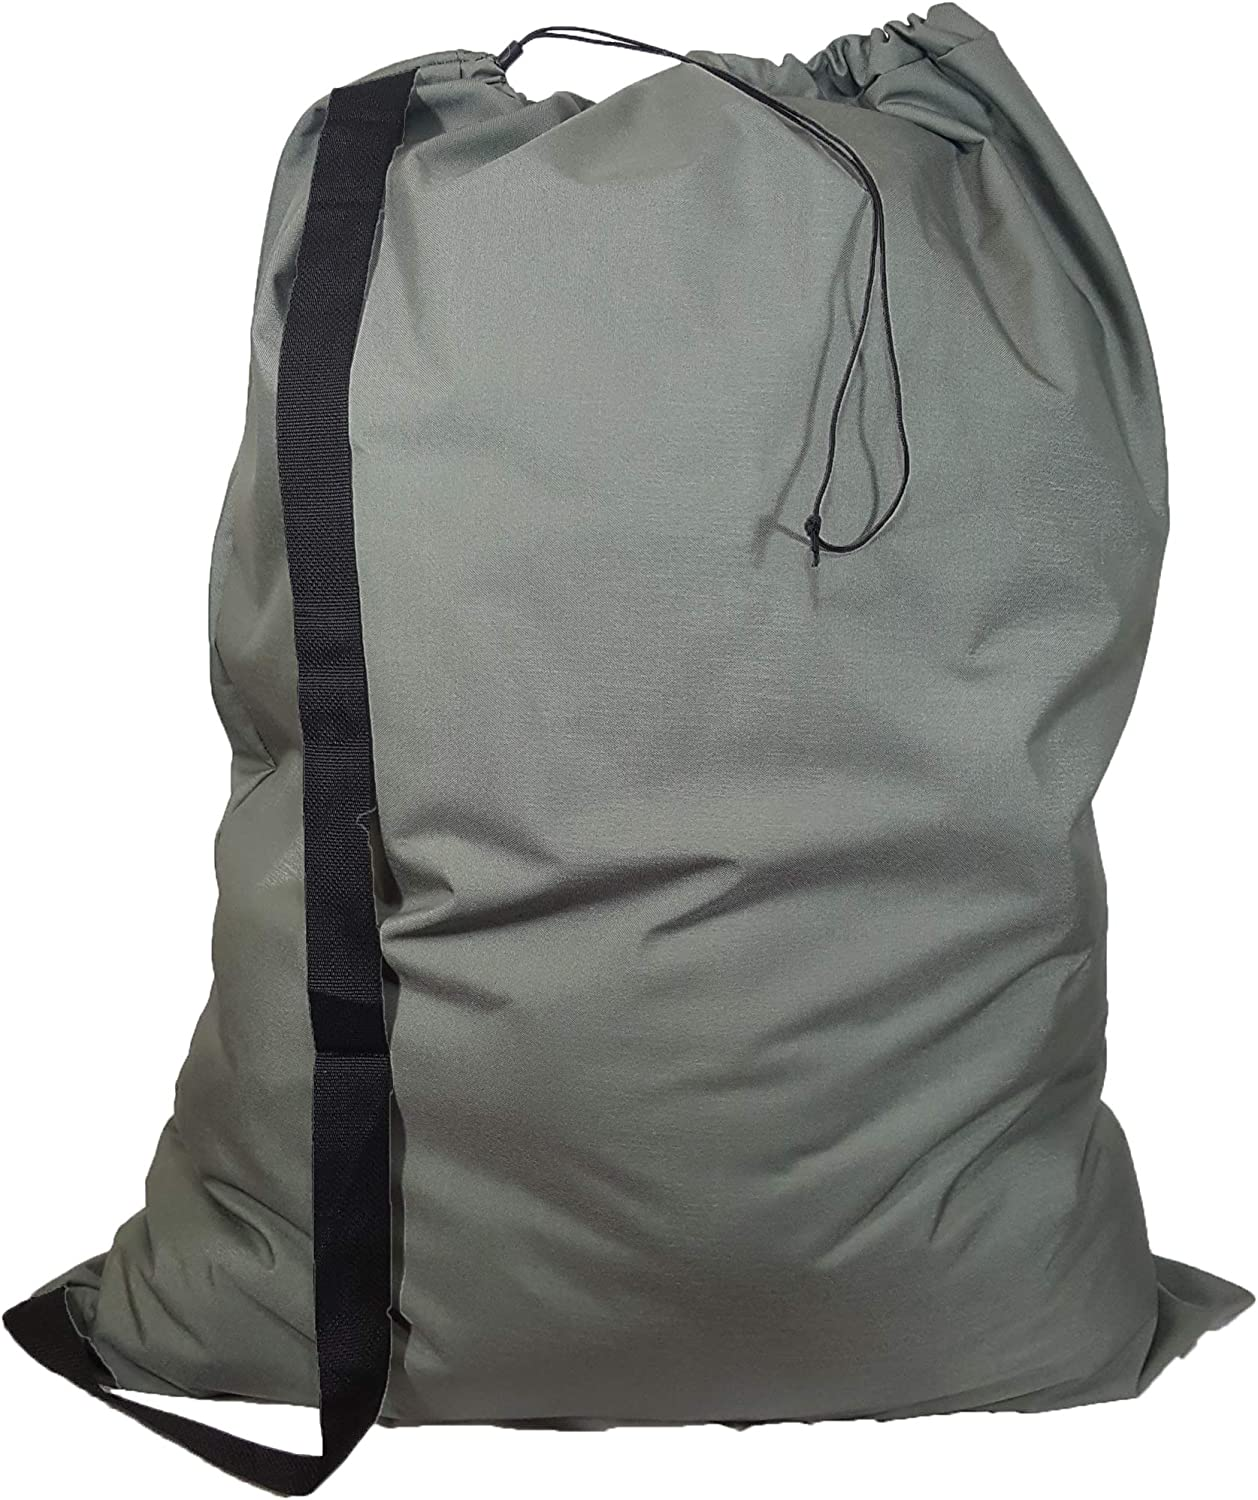 Owen Sewn Heavy Gear 40X50 Laundry Bag with Strap